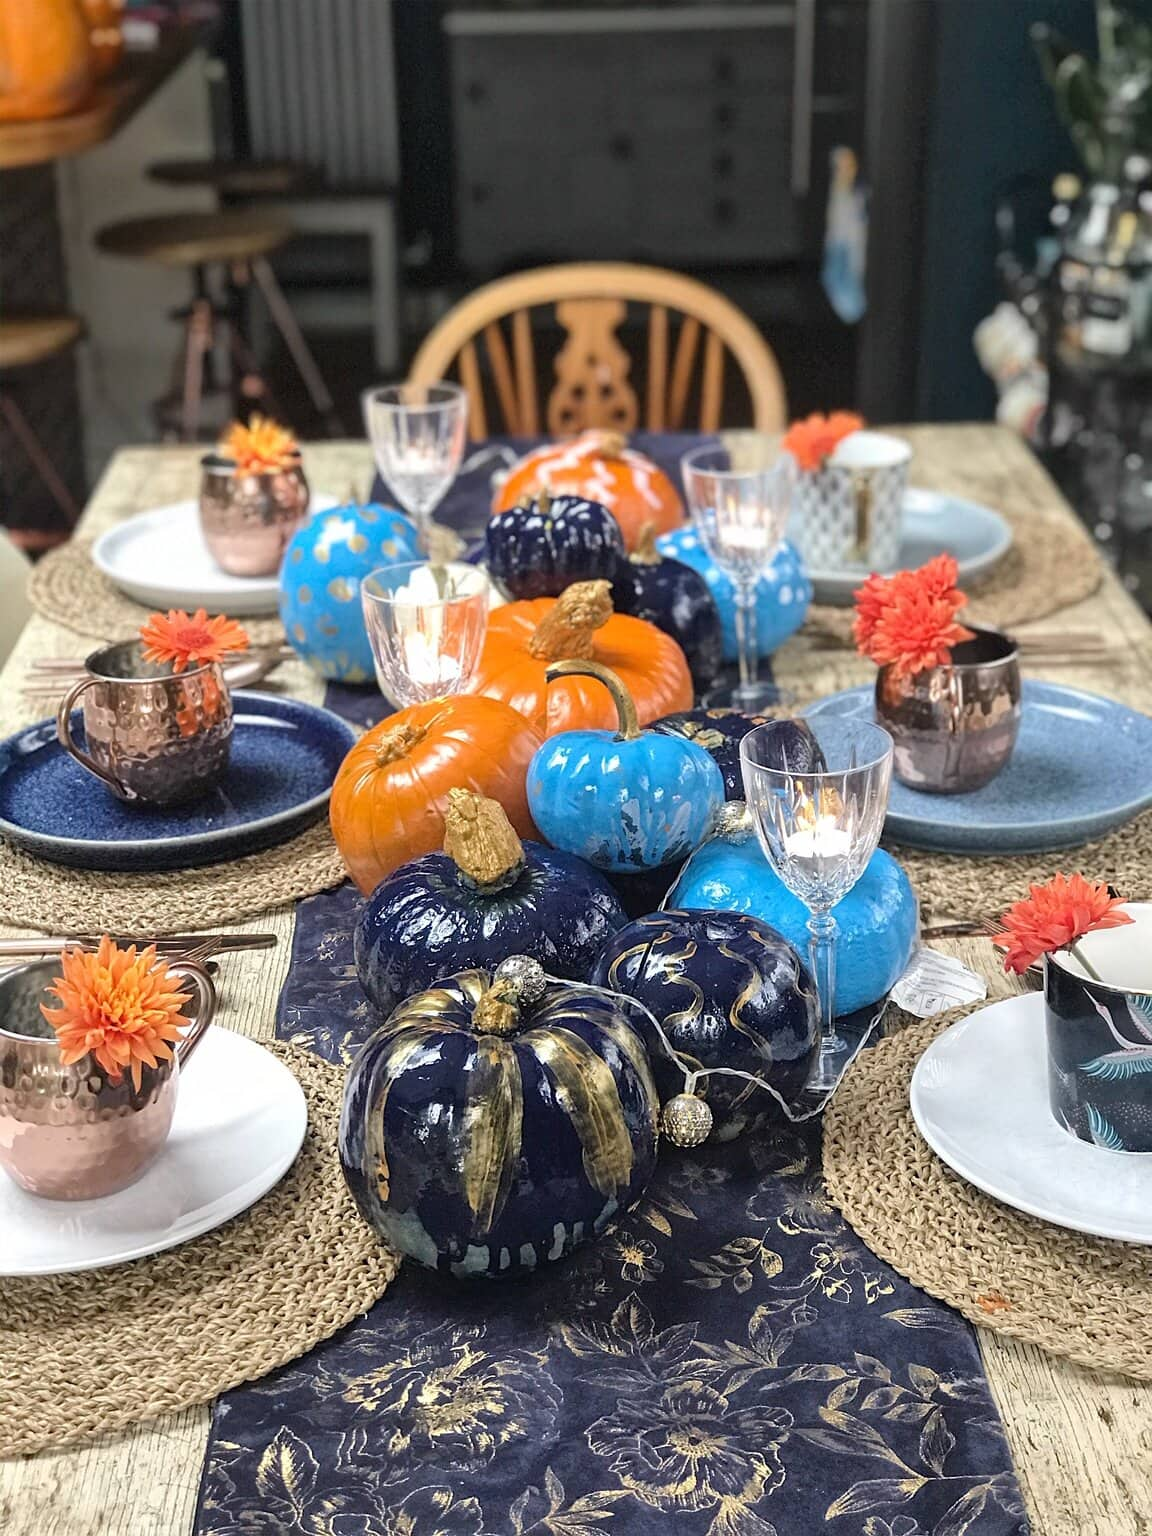 The pumpkins displayed on the table